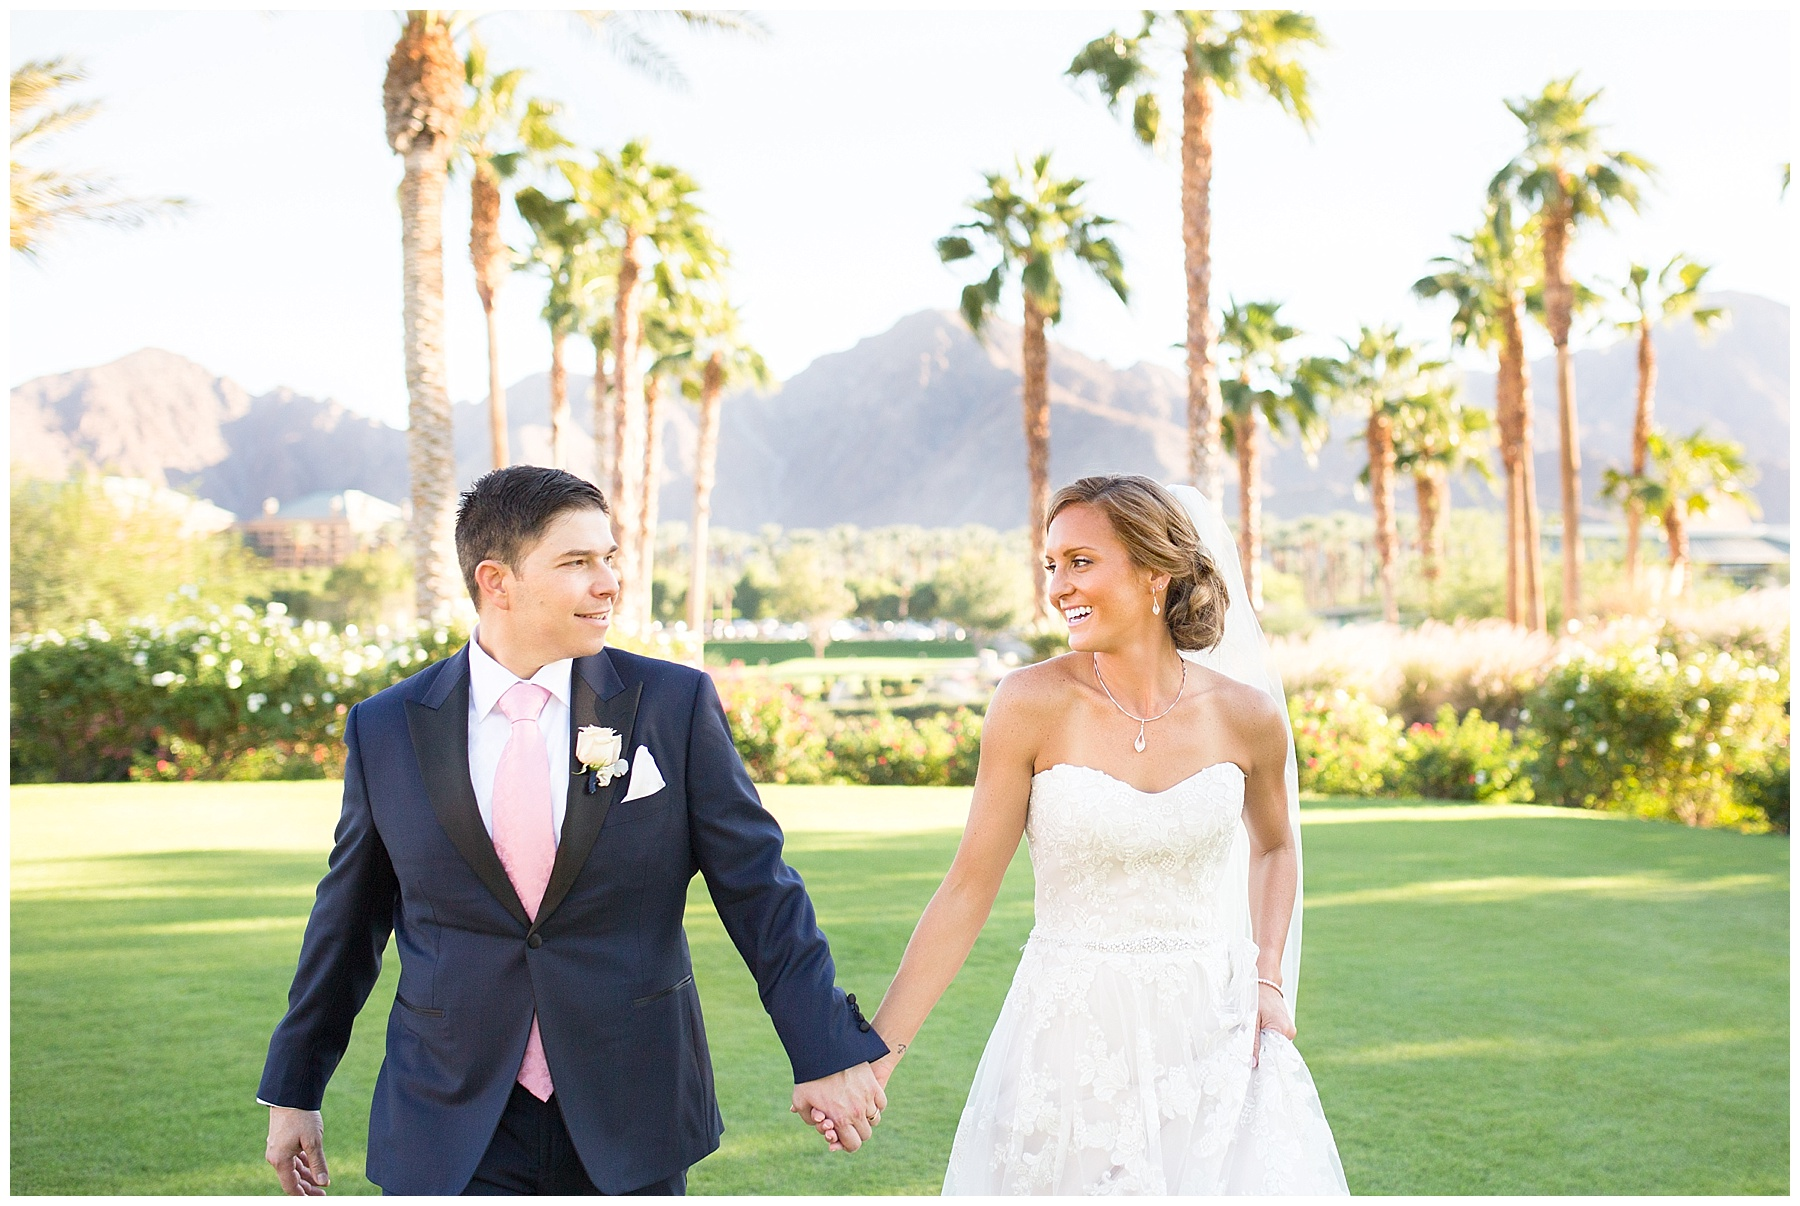 Joyful Fall Wedding at Indian Wells Golf Resort